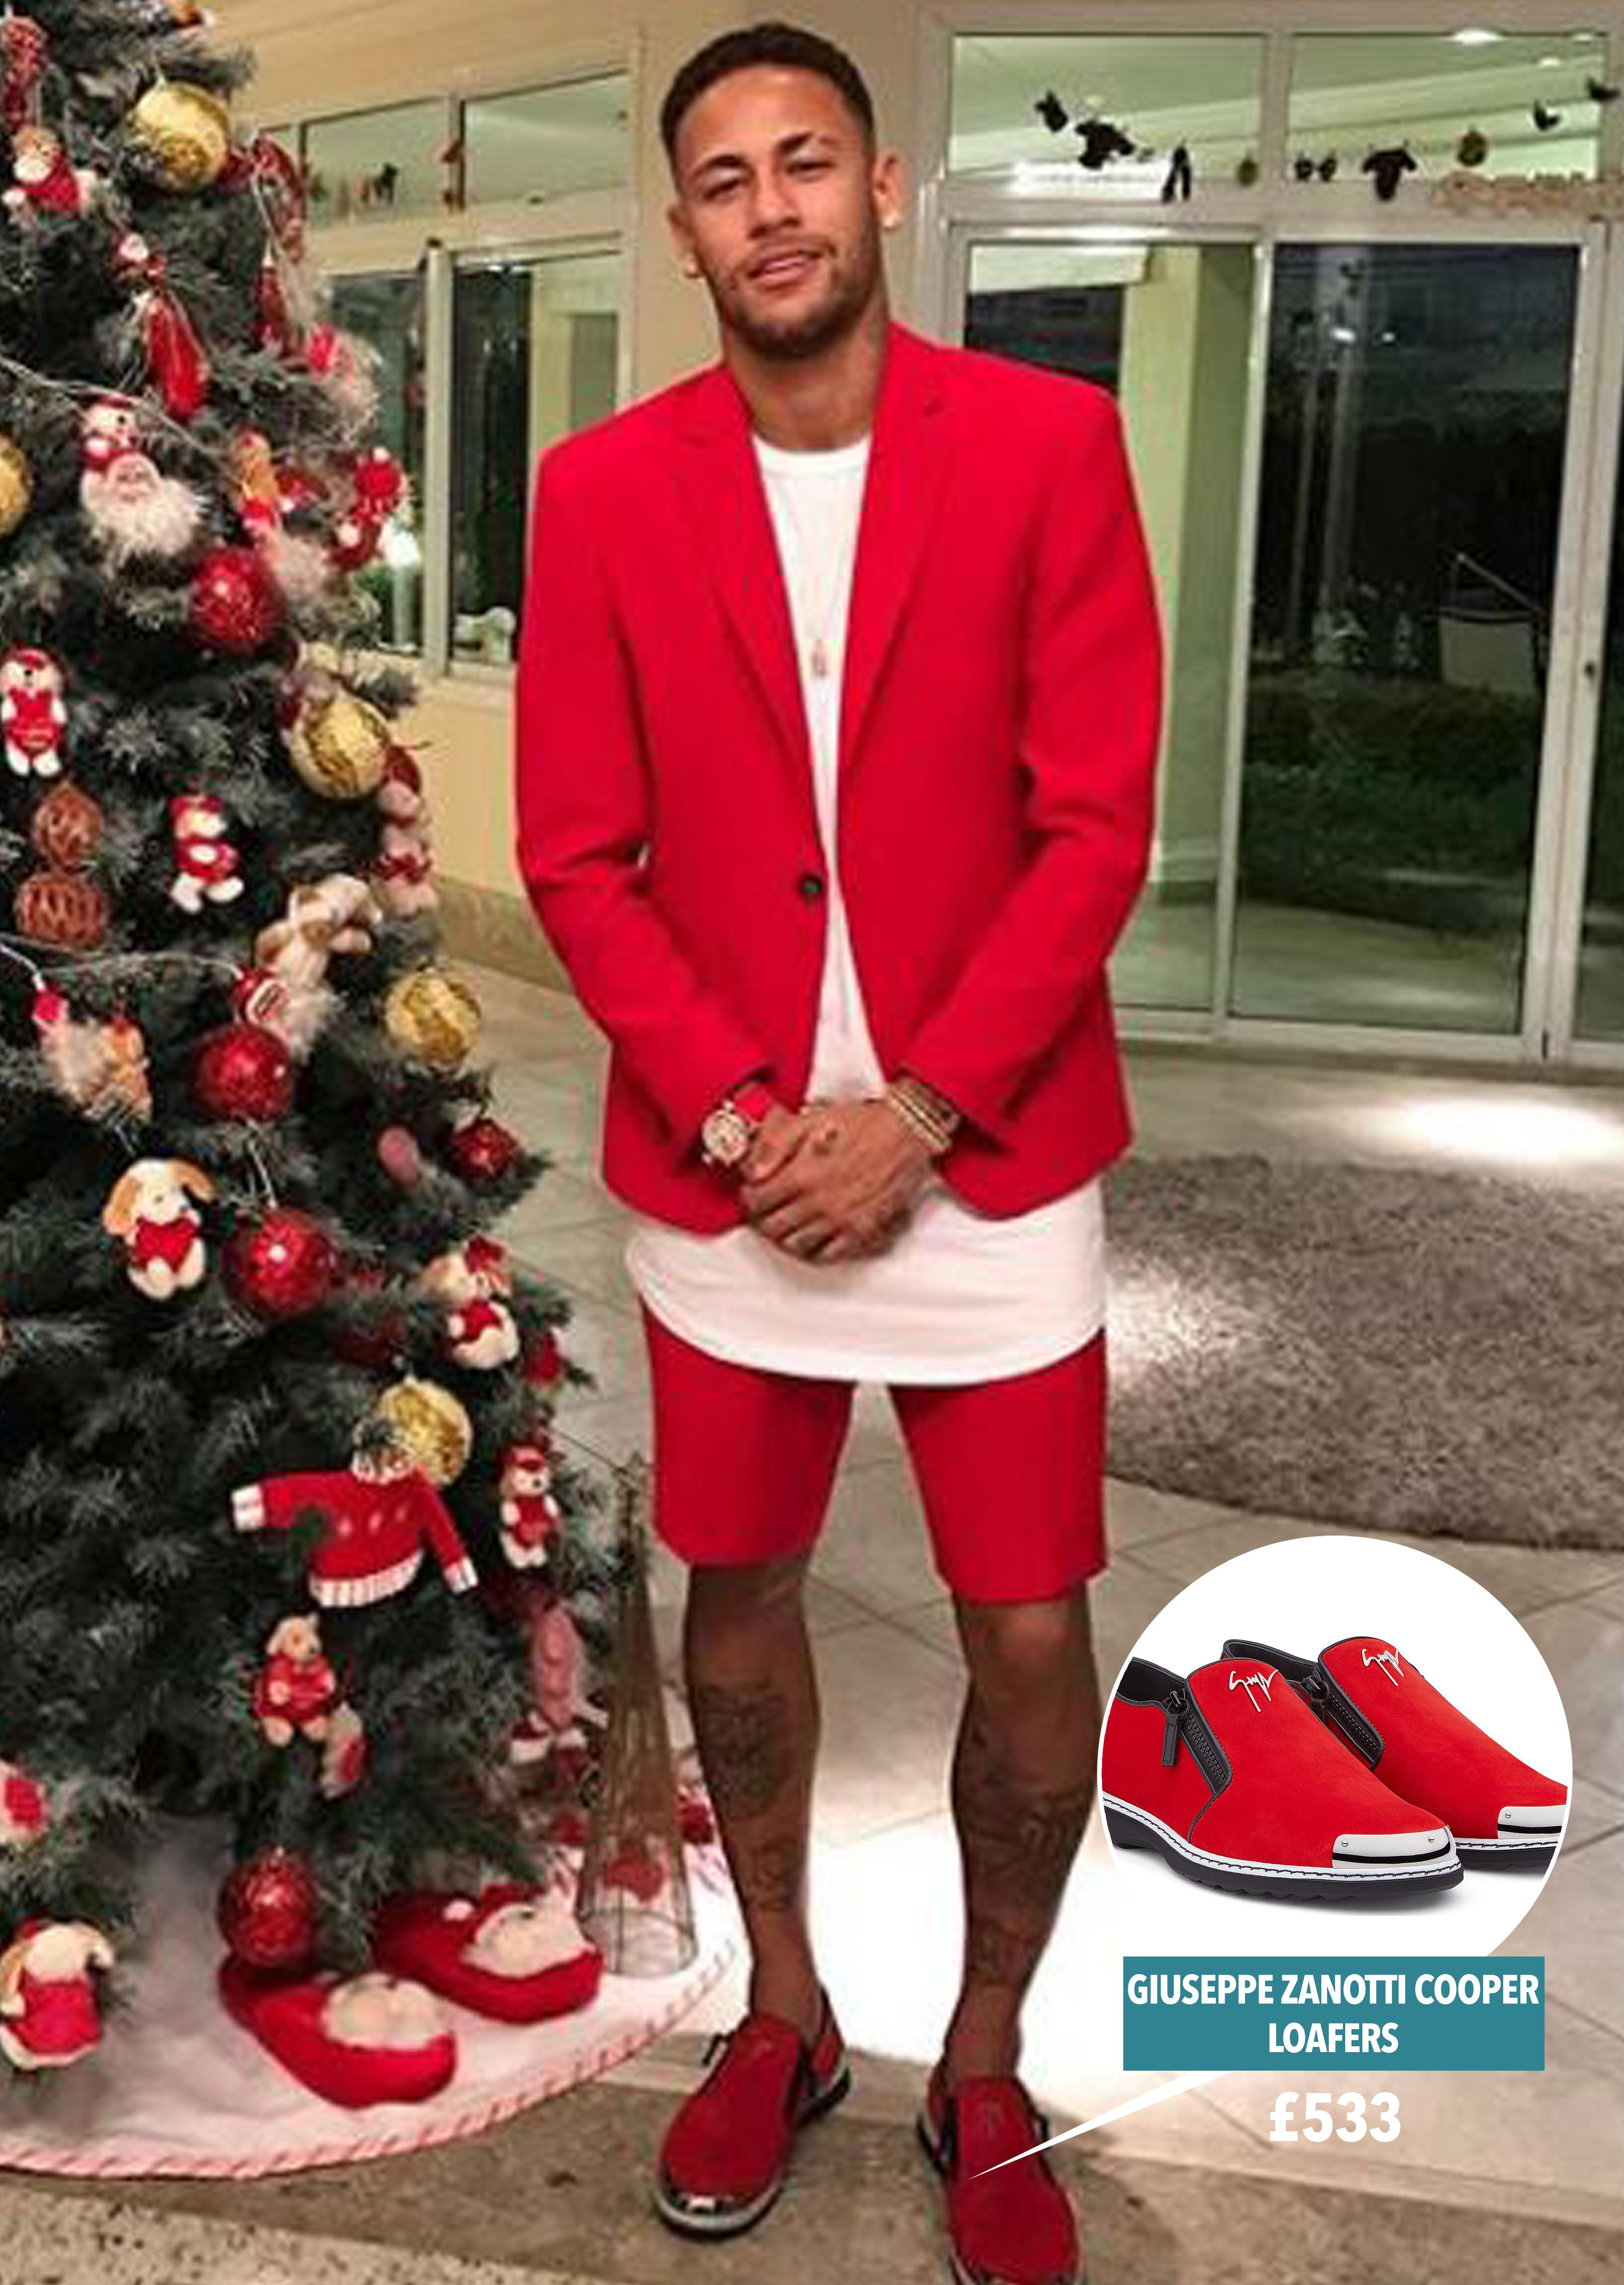 Neymar wore all red when celebrating Christmas in Brazil with his family